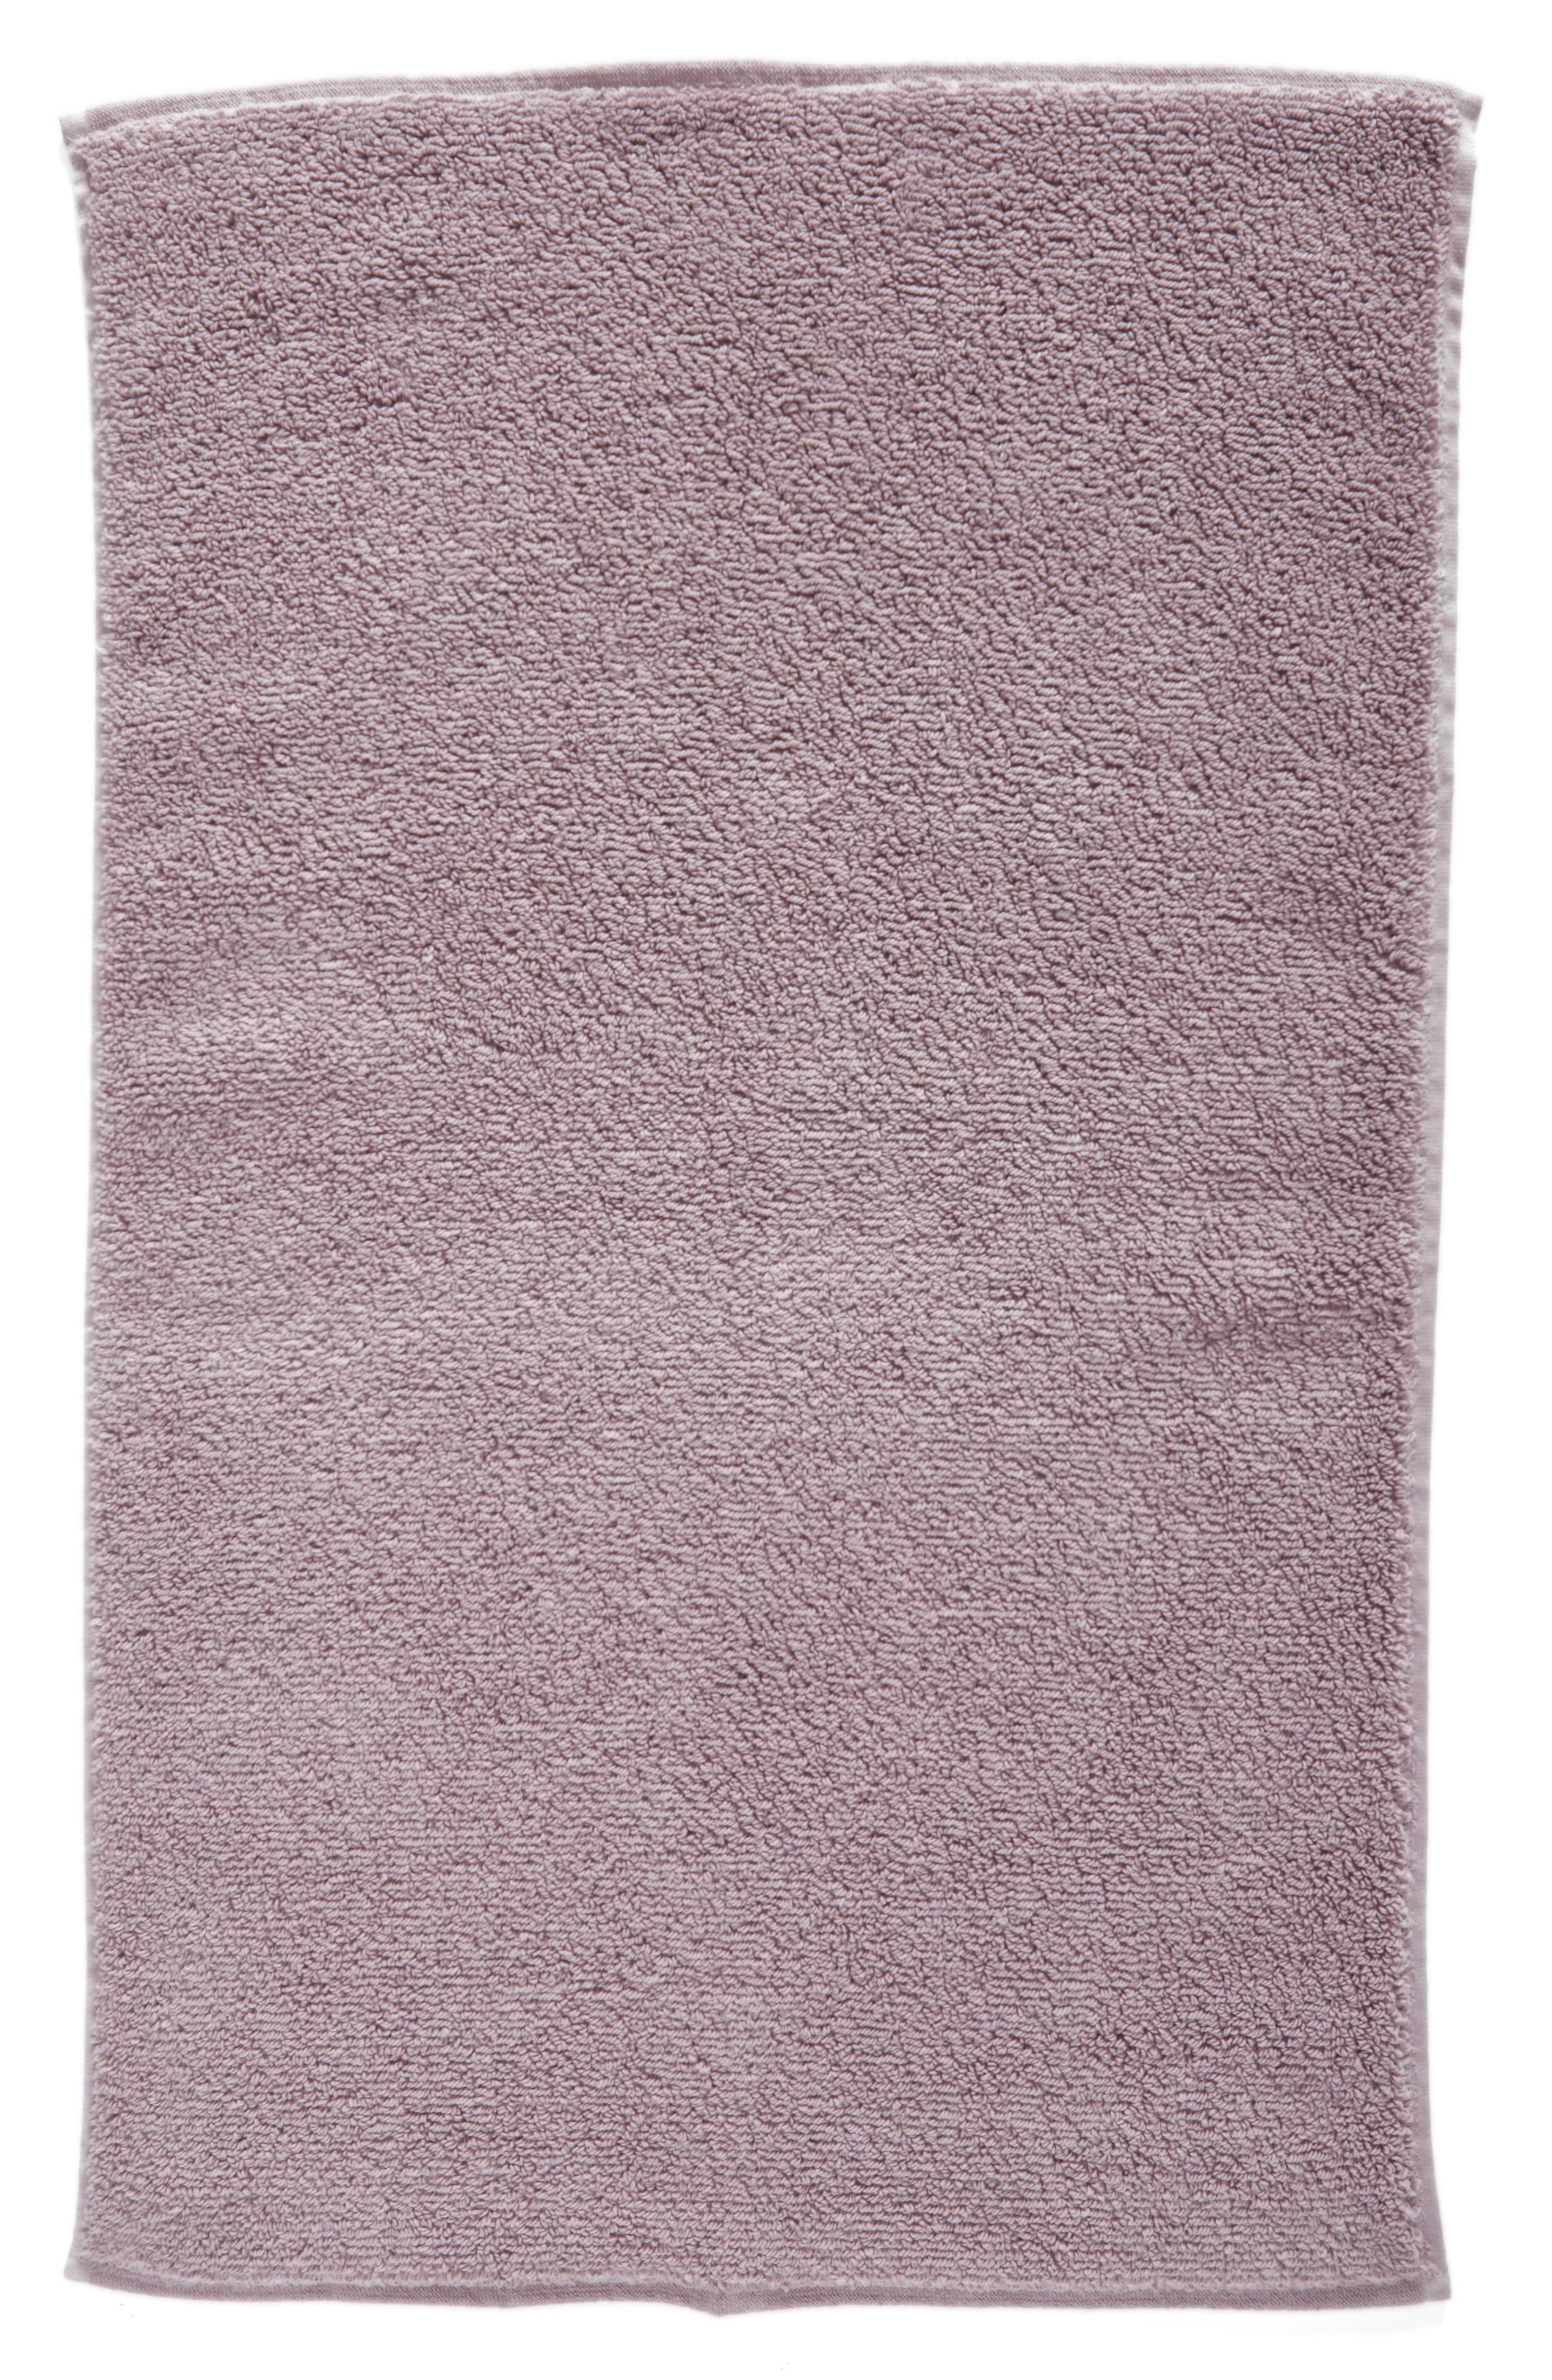 Nordstrom at Home Hydrocotton Bath Mat